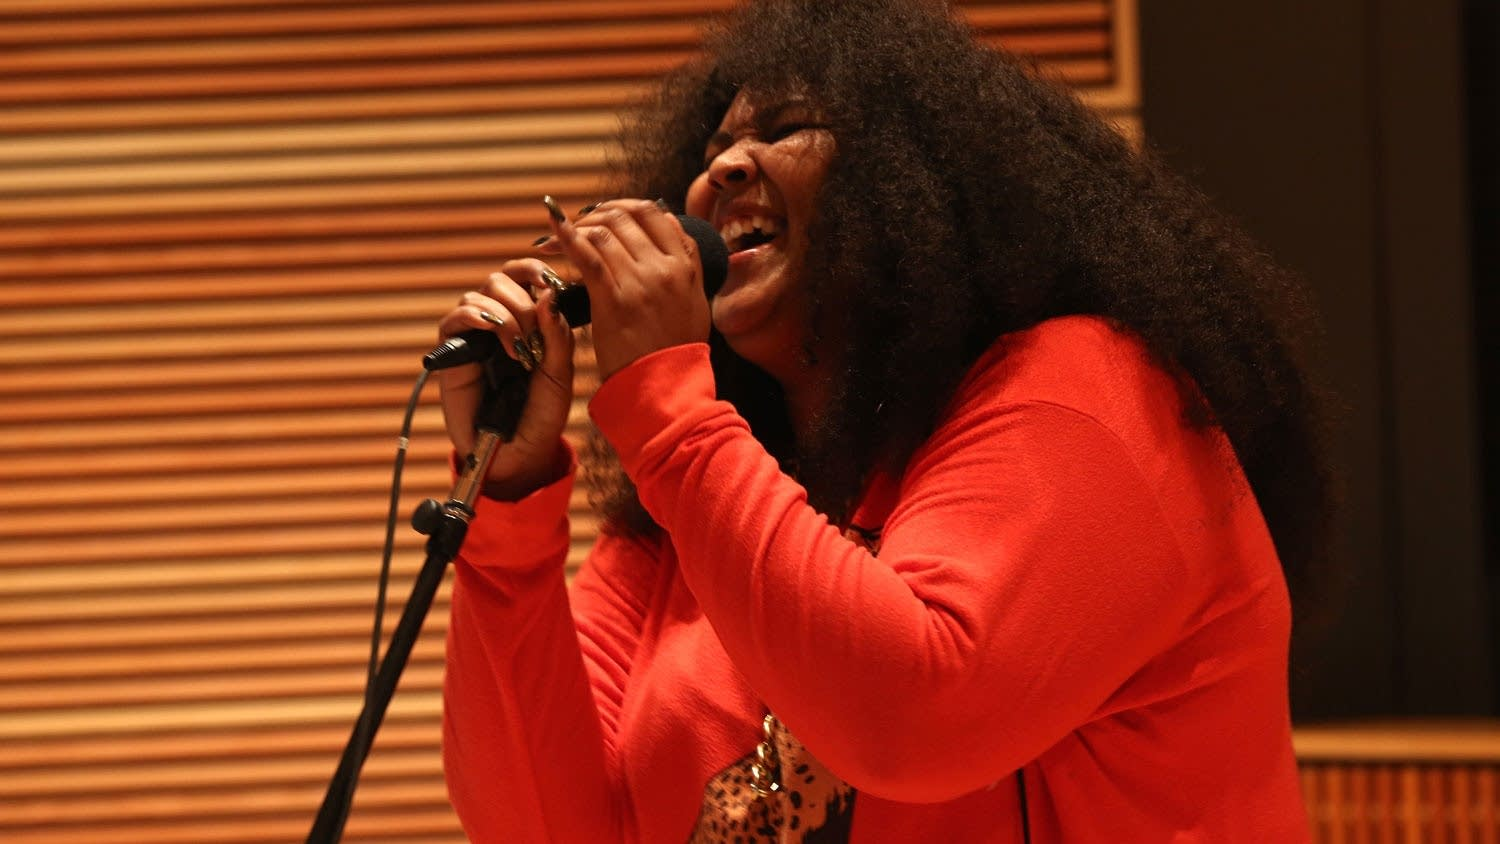 Lizzo performs in The Current studio 2